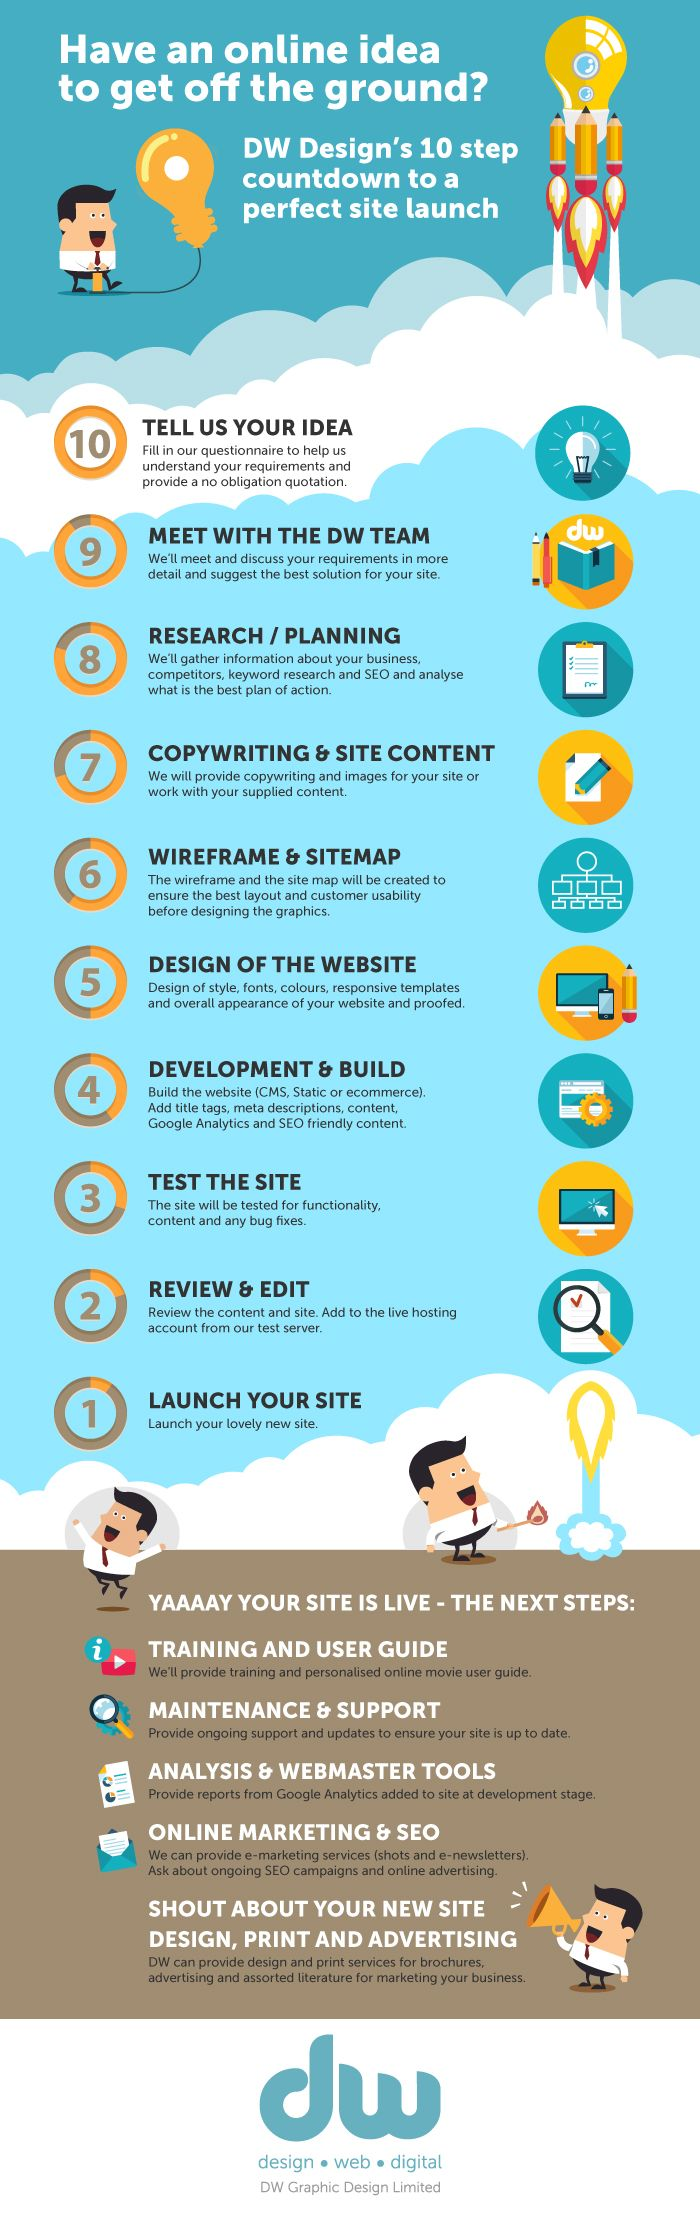 DW Design's 10 step countdown to a perfect site launch. This quick reference guide gives a brief overview of the stages involved in the process of design and development of a new website. Website design, website launch, design process.